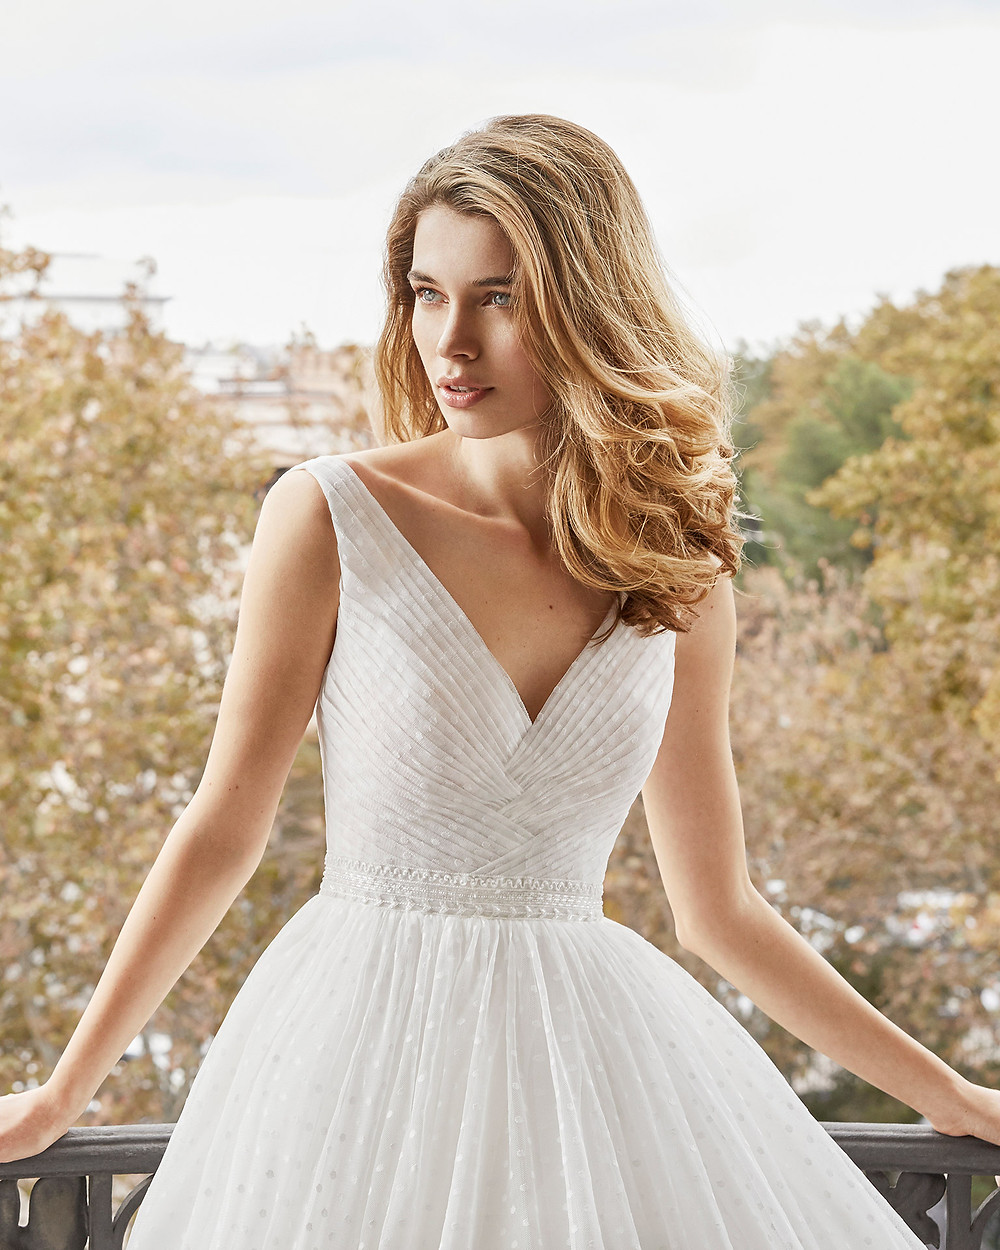 An Aire Barcelona 2020 polka dot crepe ball gown wedding dress with a v neckline